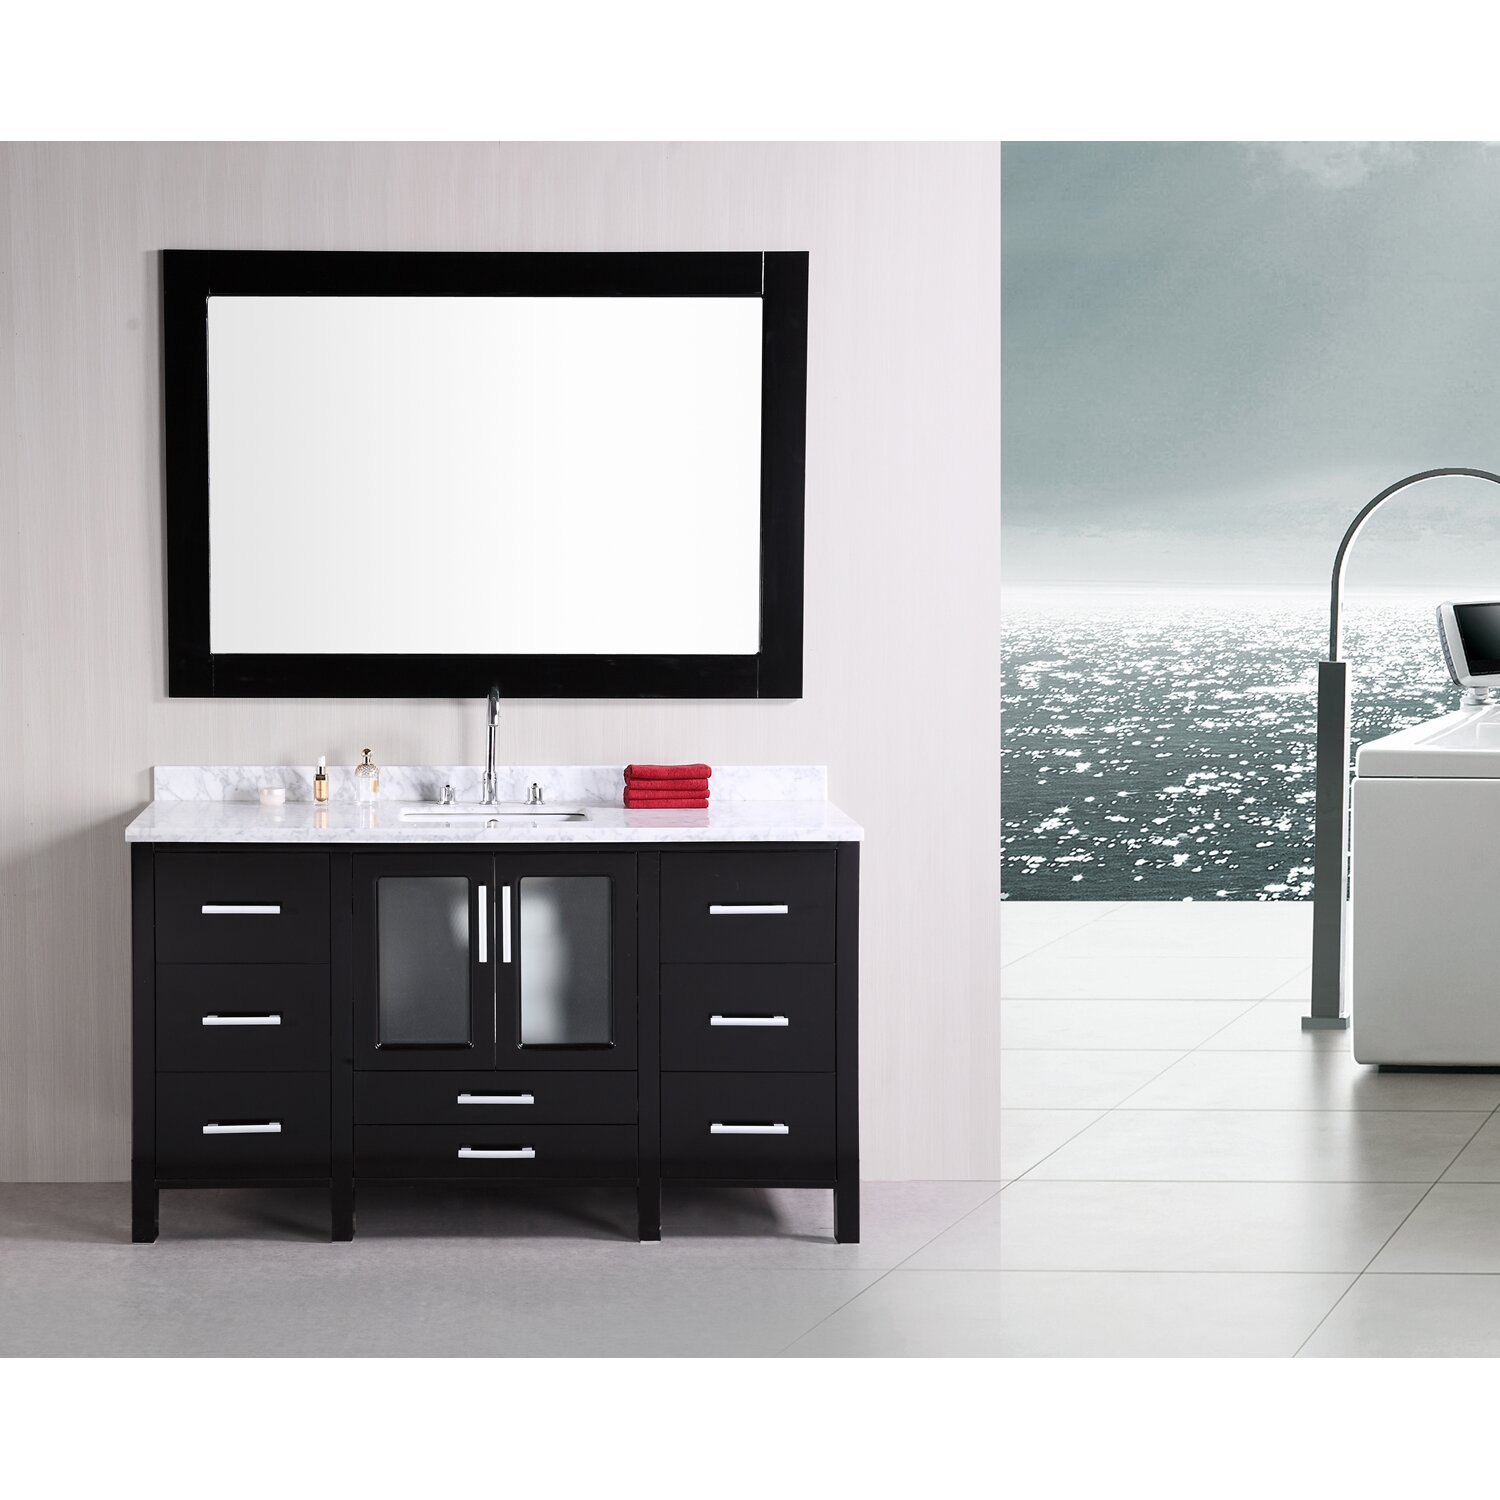 Dcor Design Pratt 60 Single Modern Bathroom Vanity Set With Mirror Reviews Wayfair